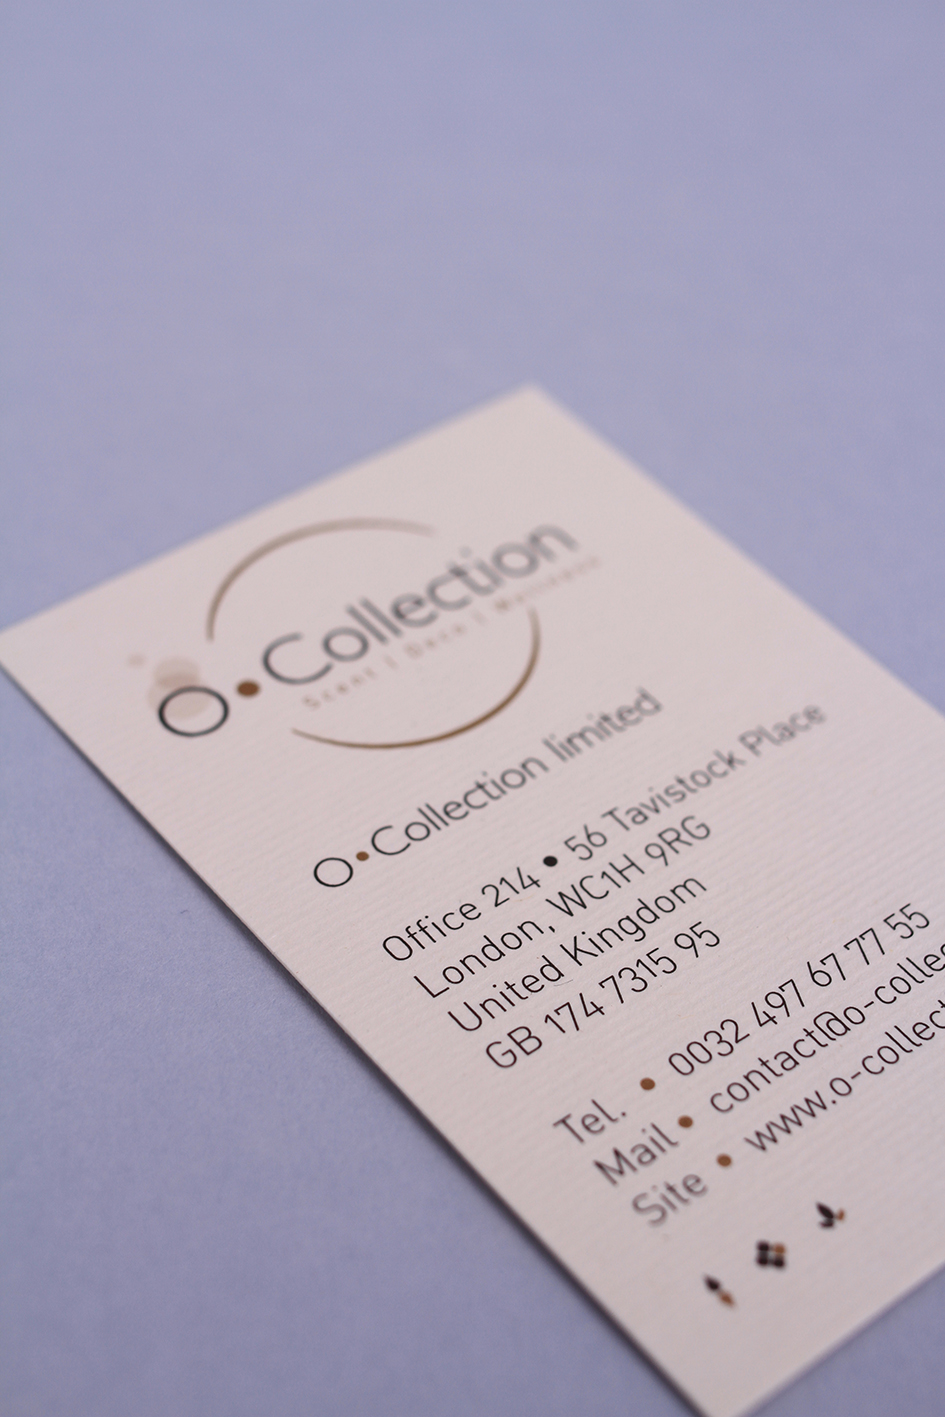 O-Collection • Corporate 2014